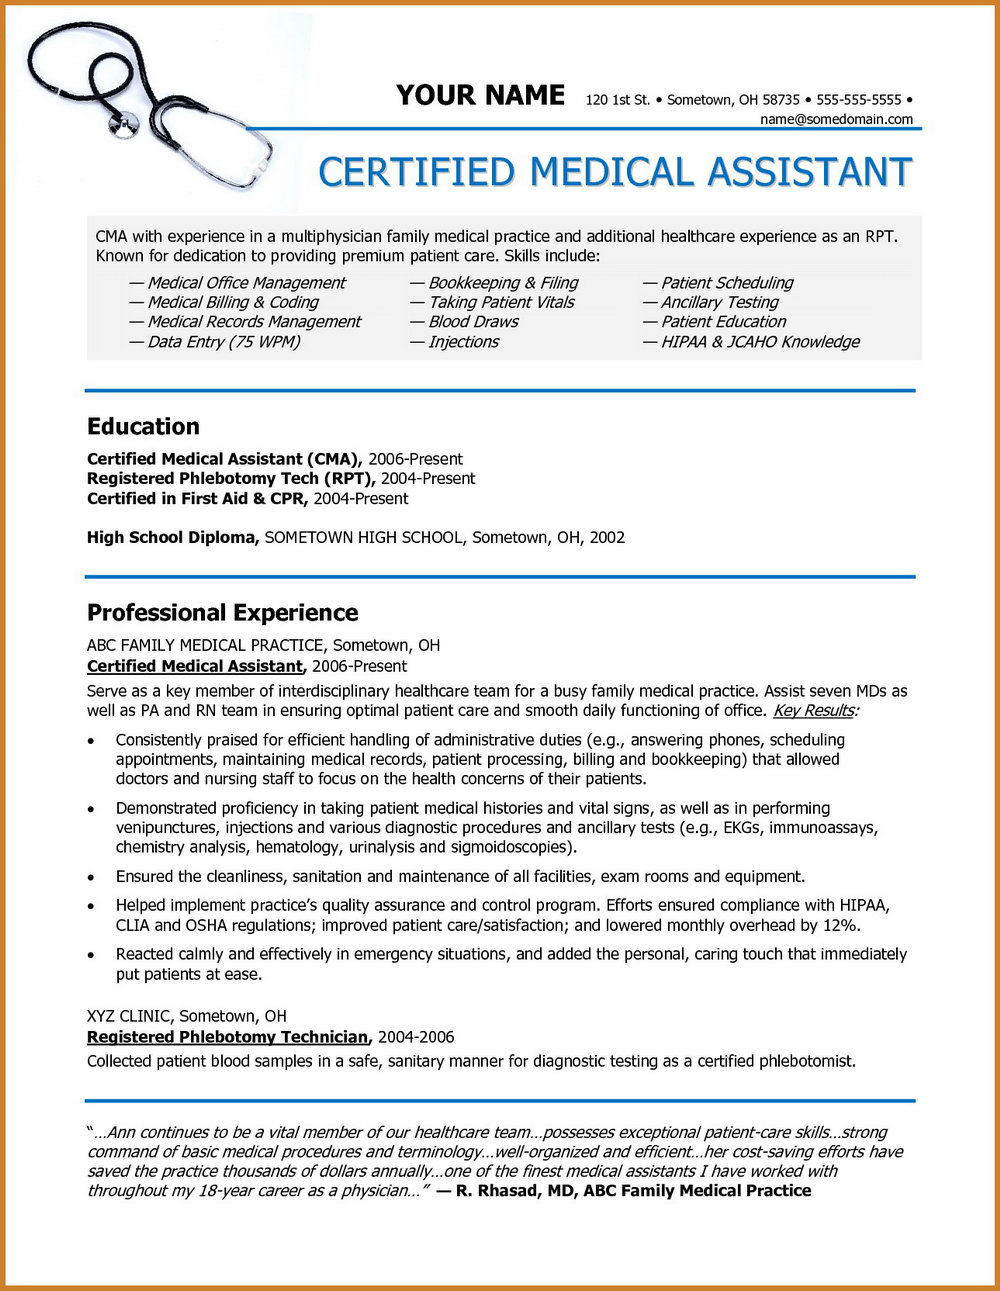 Medical Assistant Resumes And Cover Letters